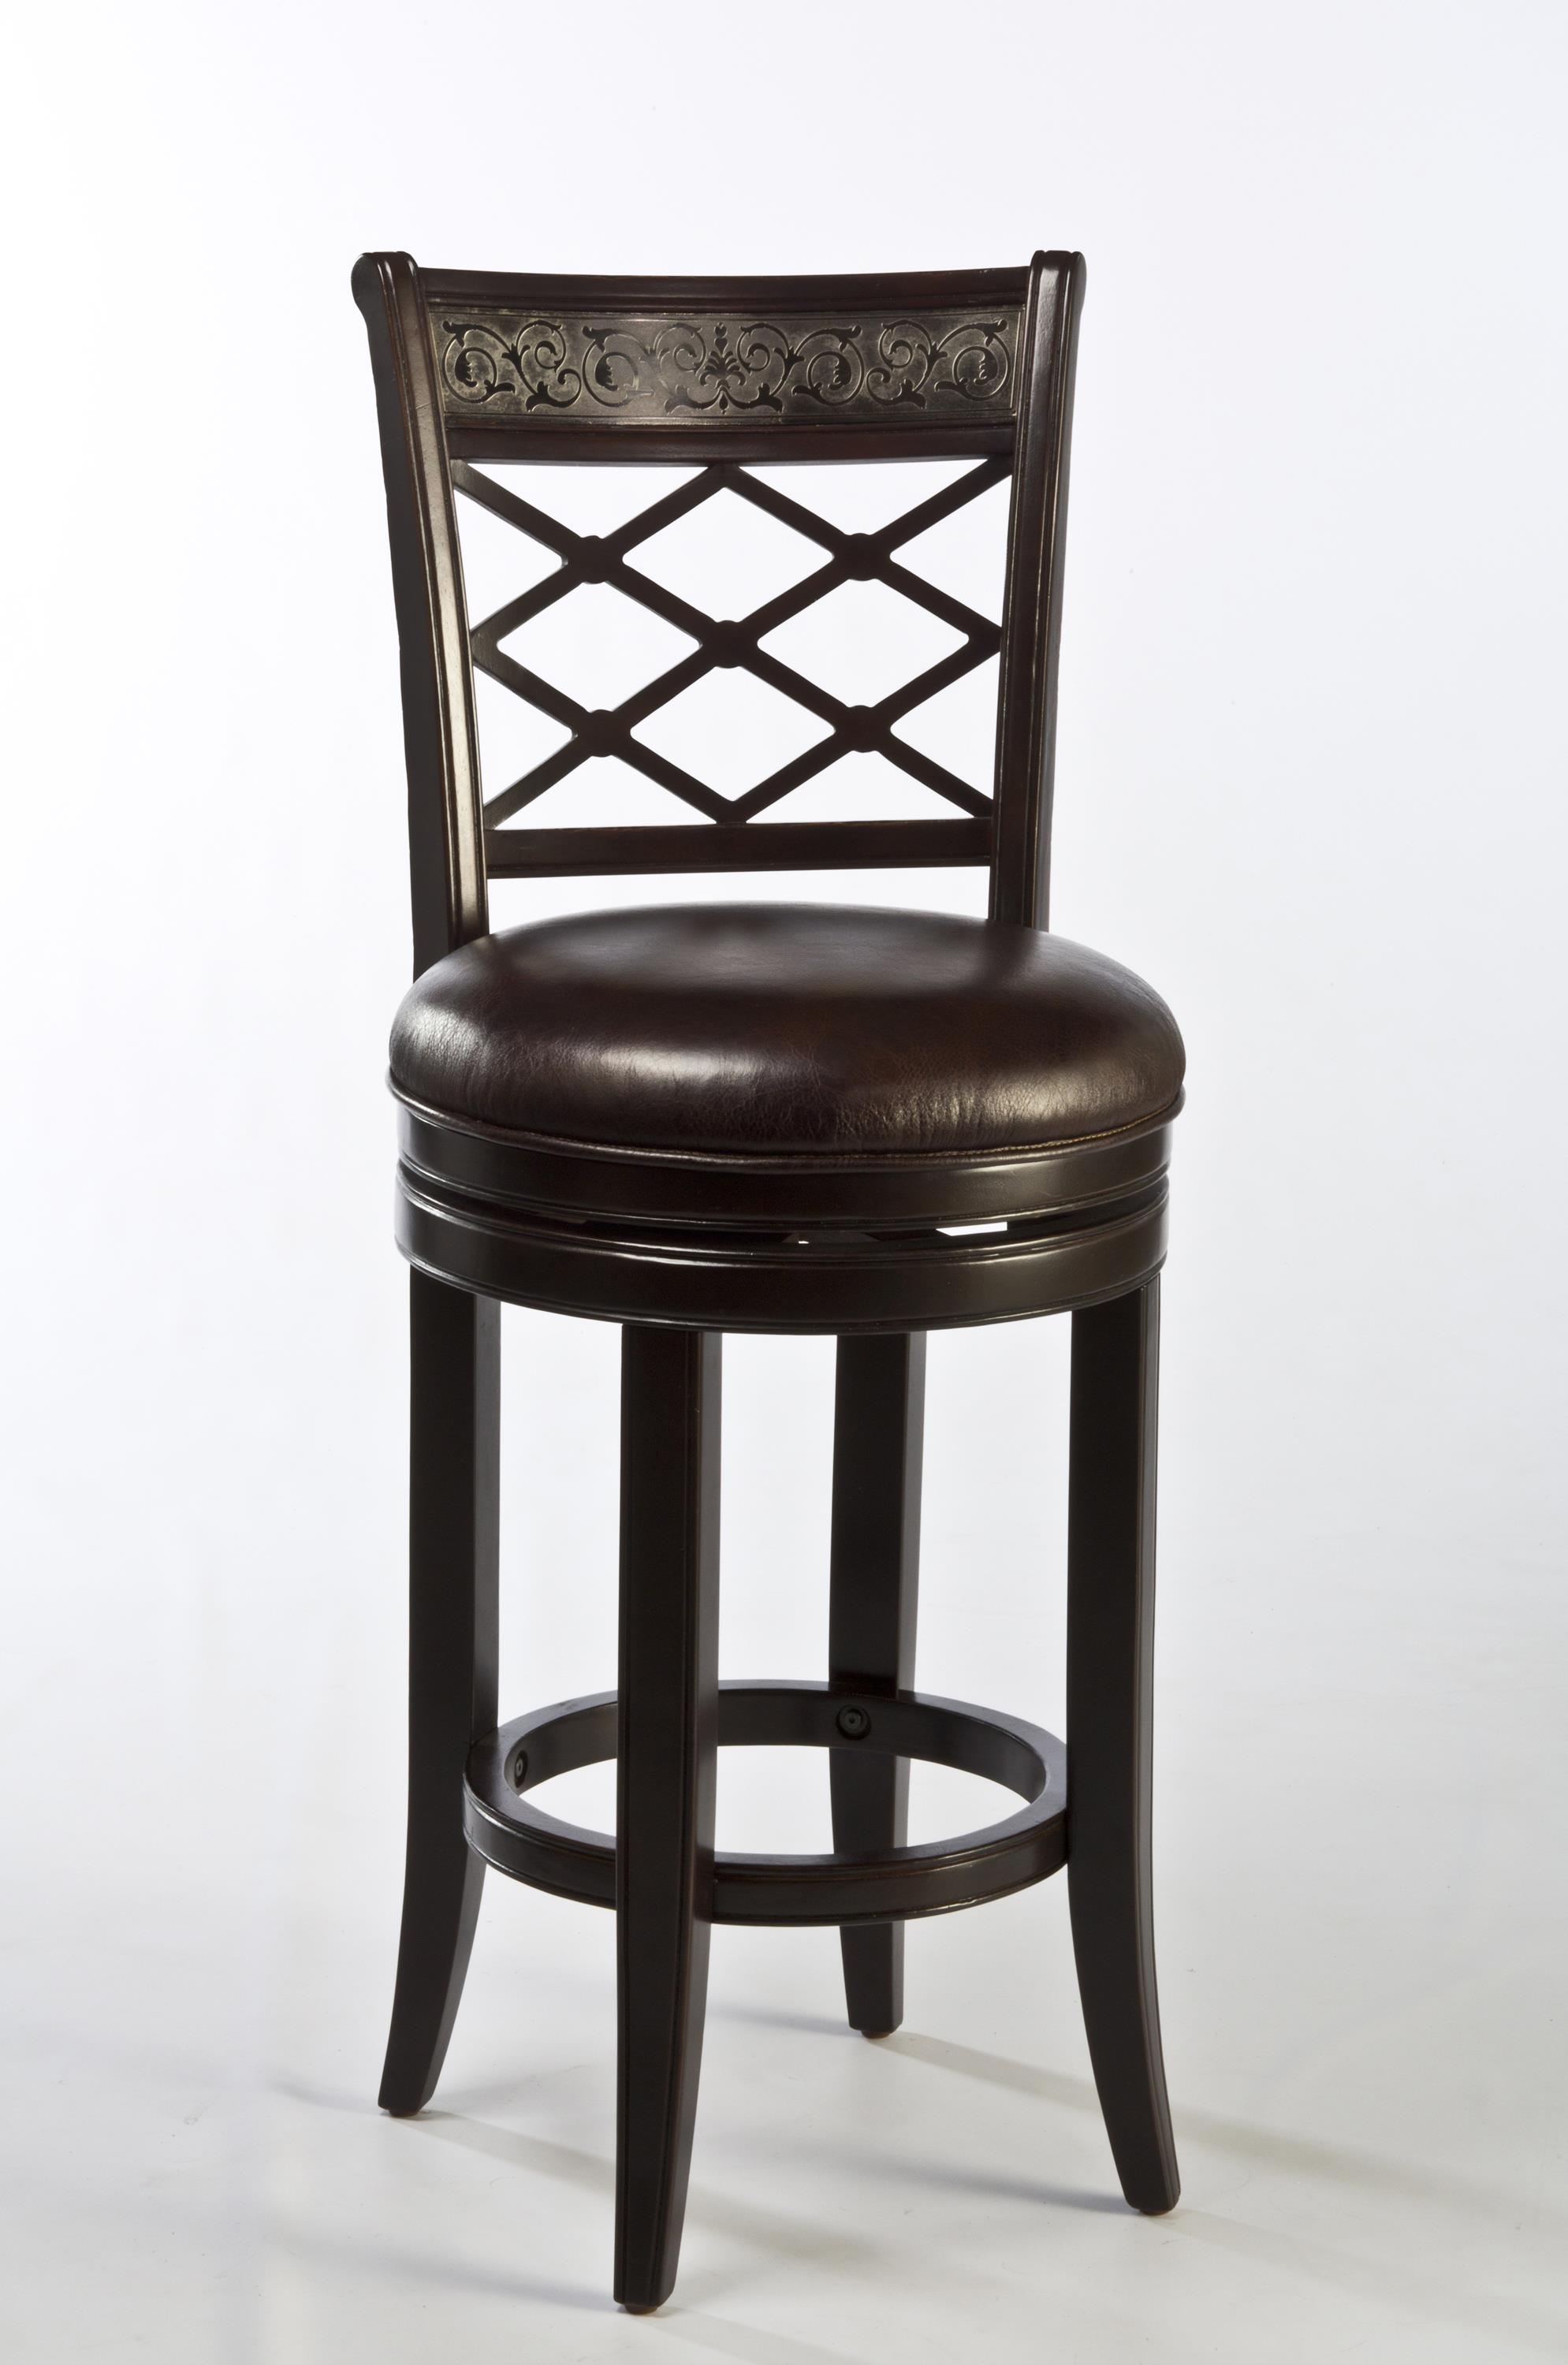 Spalding Swivel Bar Stool With Etched Pattern By Hillsdale Wolf And Gardiner Wolf Furniture